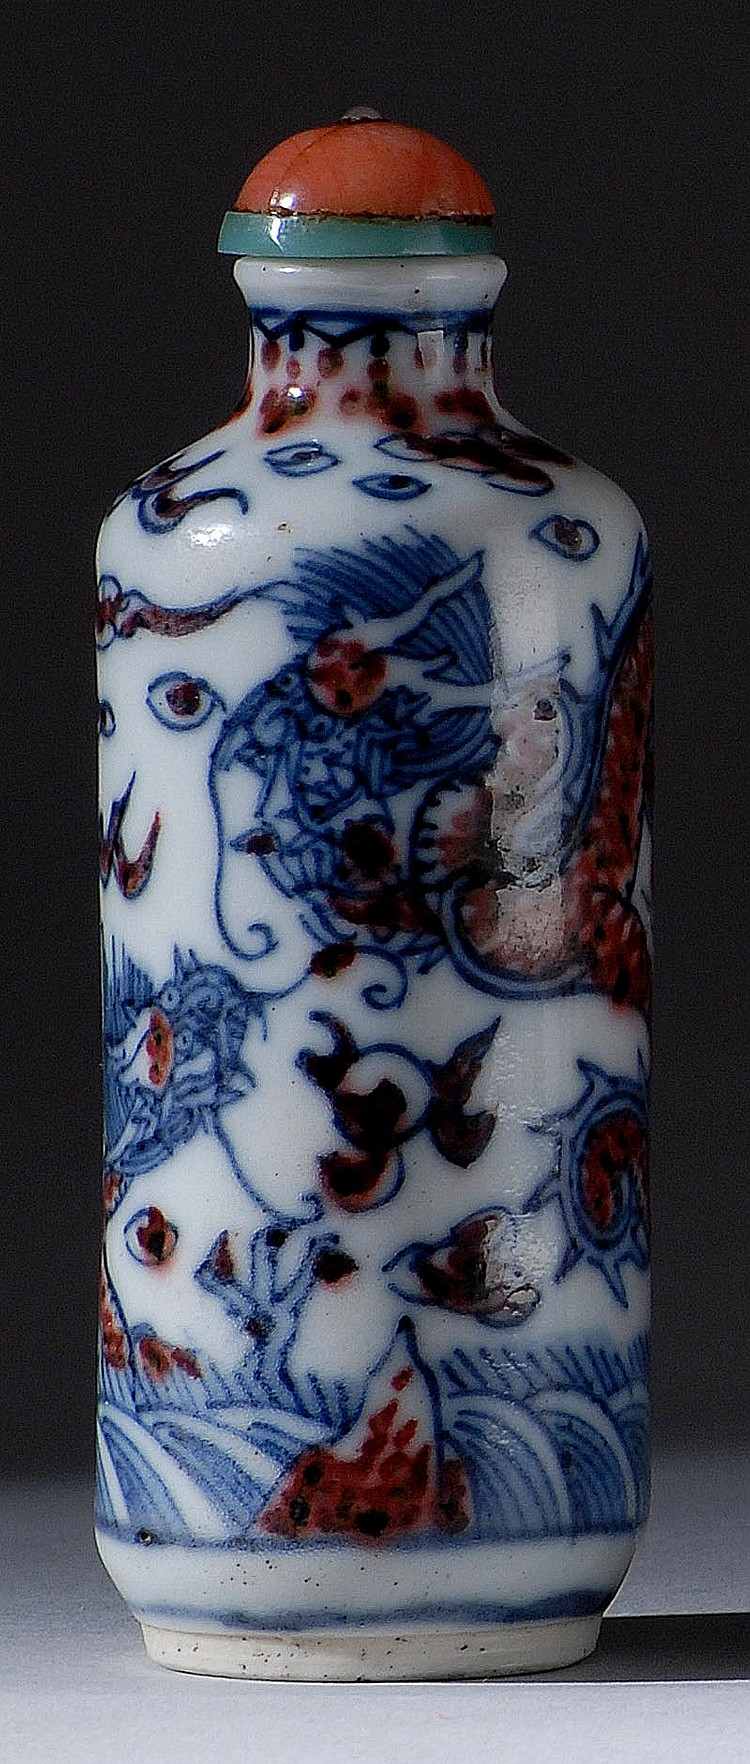 UNDERGLAZE RED AND BLUE PORCELAIN SNUFF BOTTLE In cylinder form with dramatic depiction of two dragons and waves. Height 3